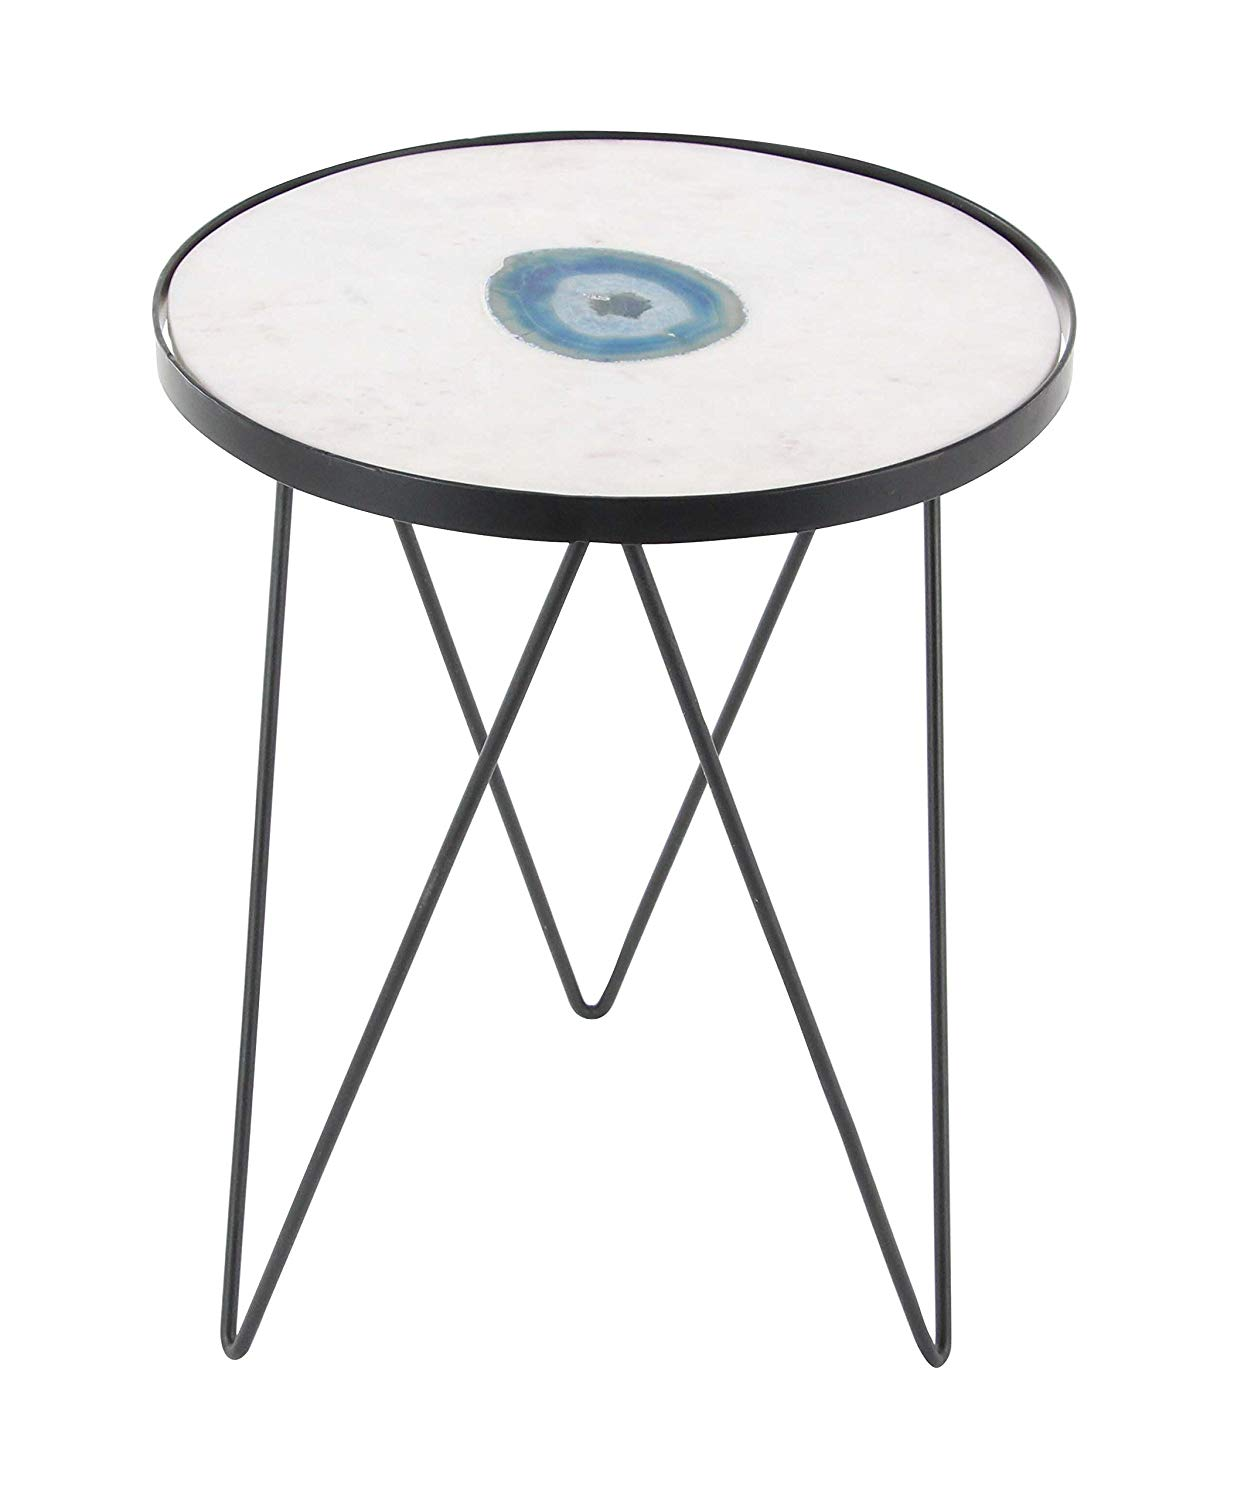 small round cover accent wooden decorating table unfinished white faux tablecloth pedestal wood ideas covers for threshold side full size patterned plastic tablecloths end tables